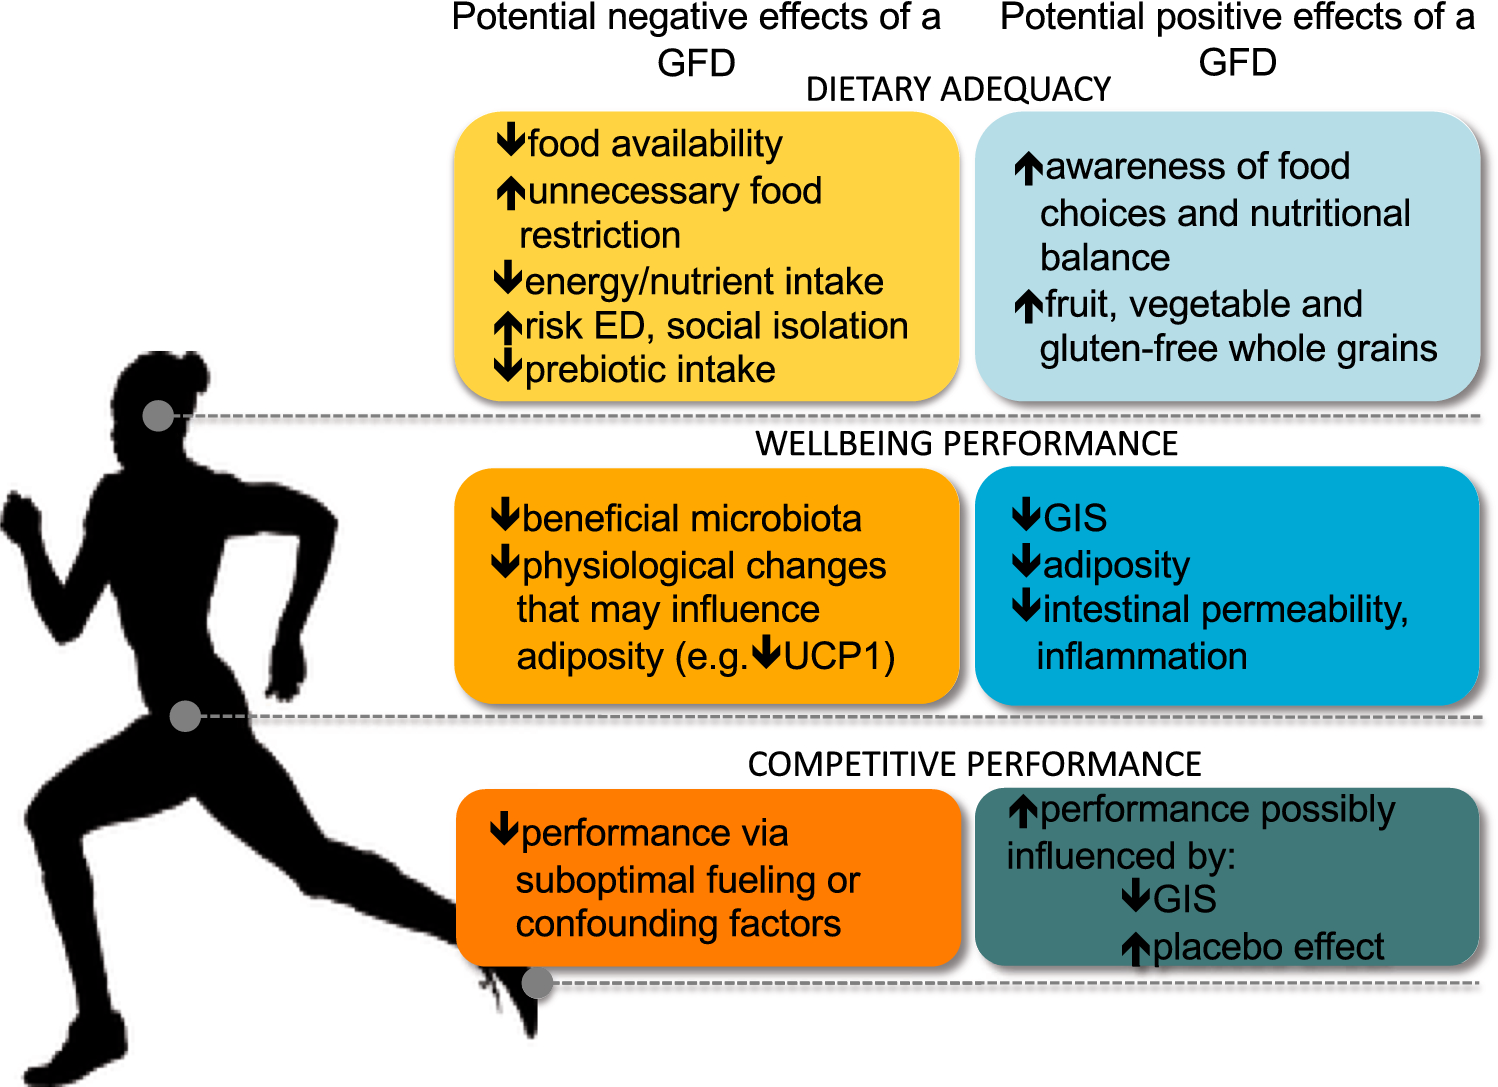 Exit Gluten-Free and Enter Low FODMAPs: A Novel Dietary Strategy to